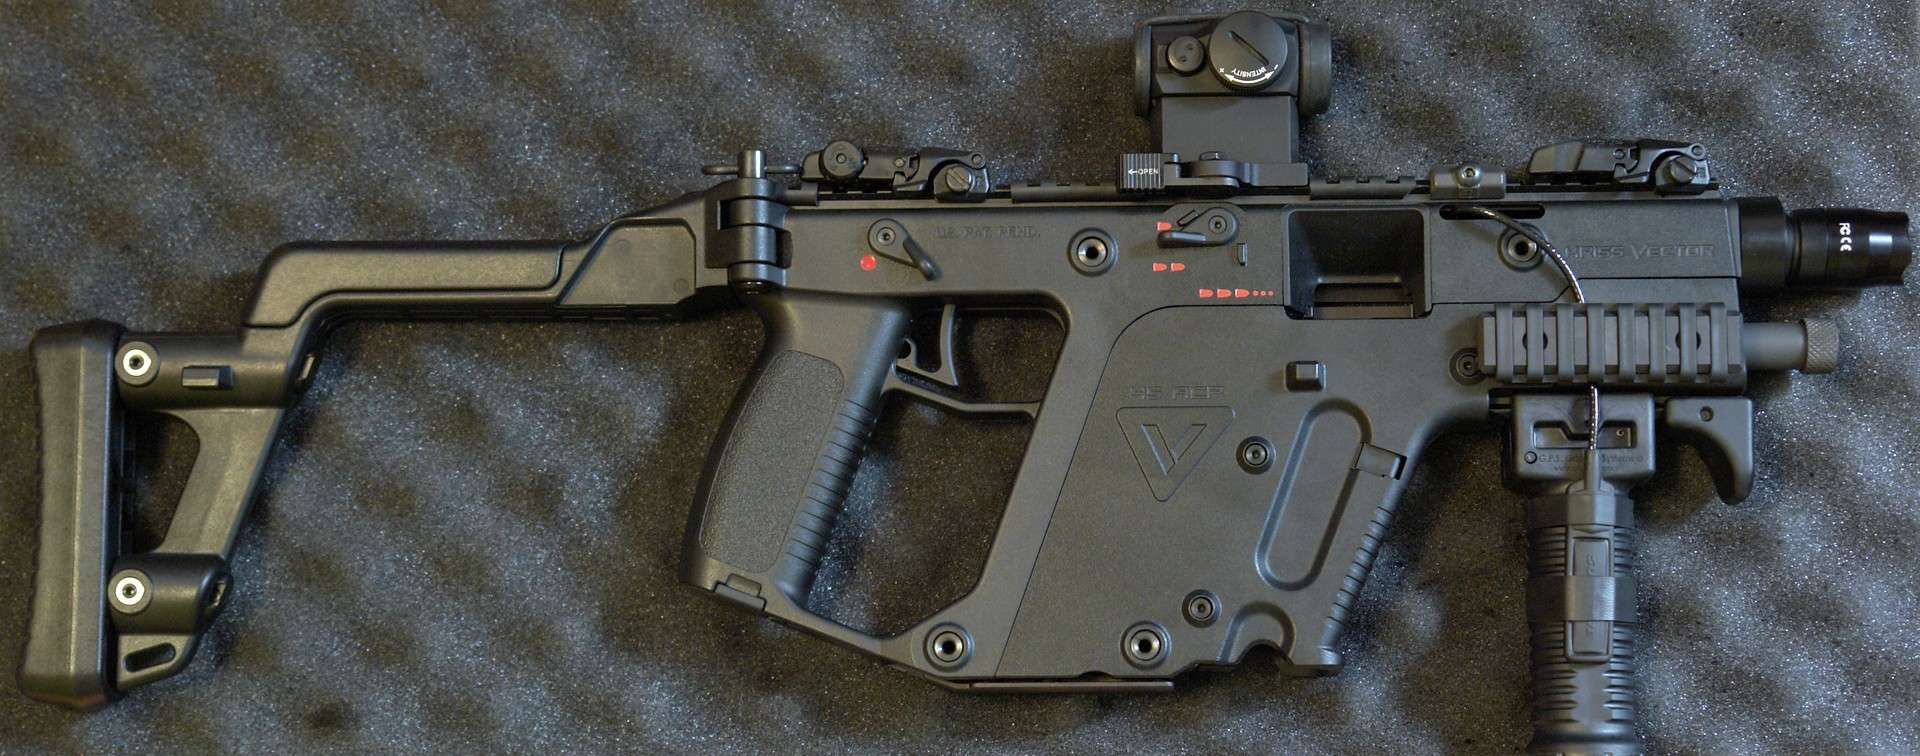 KWA Kriss Vector Accessories & Parts Kriss_22